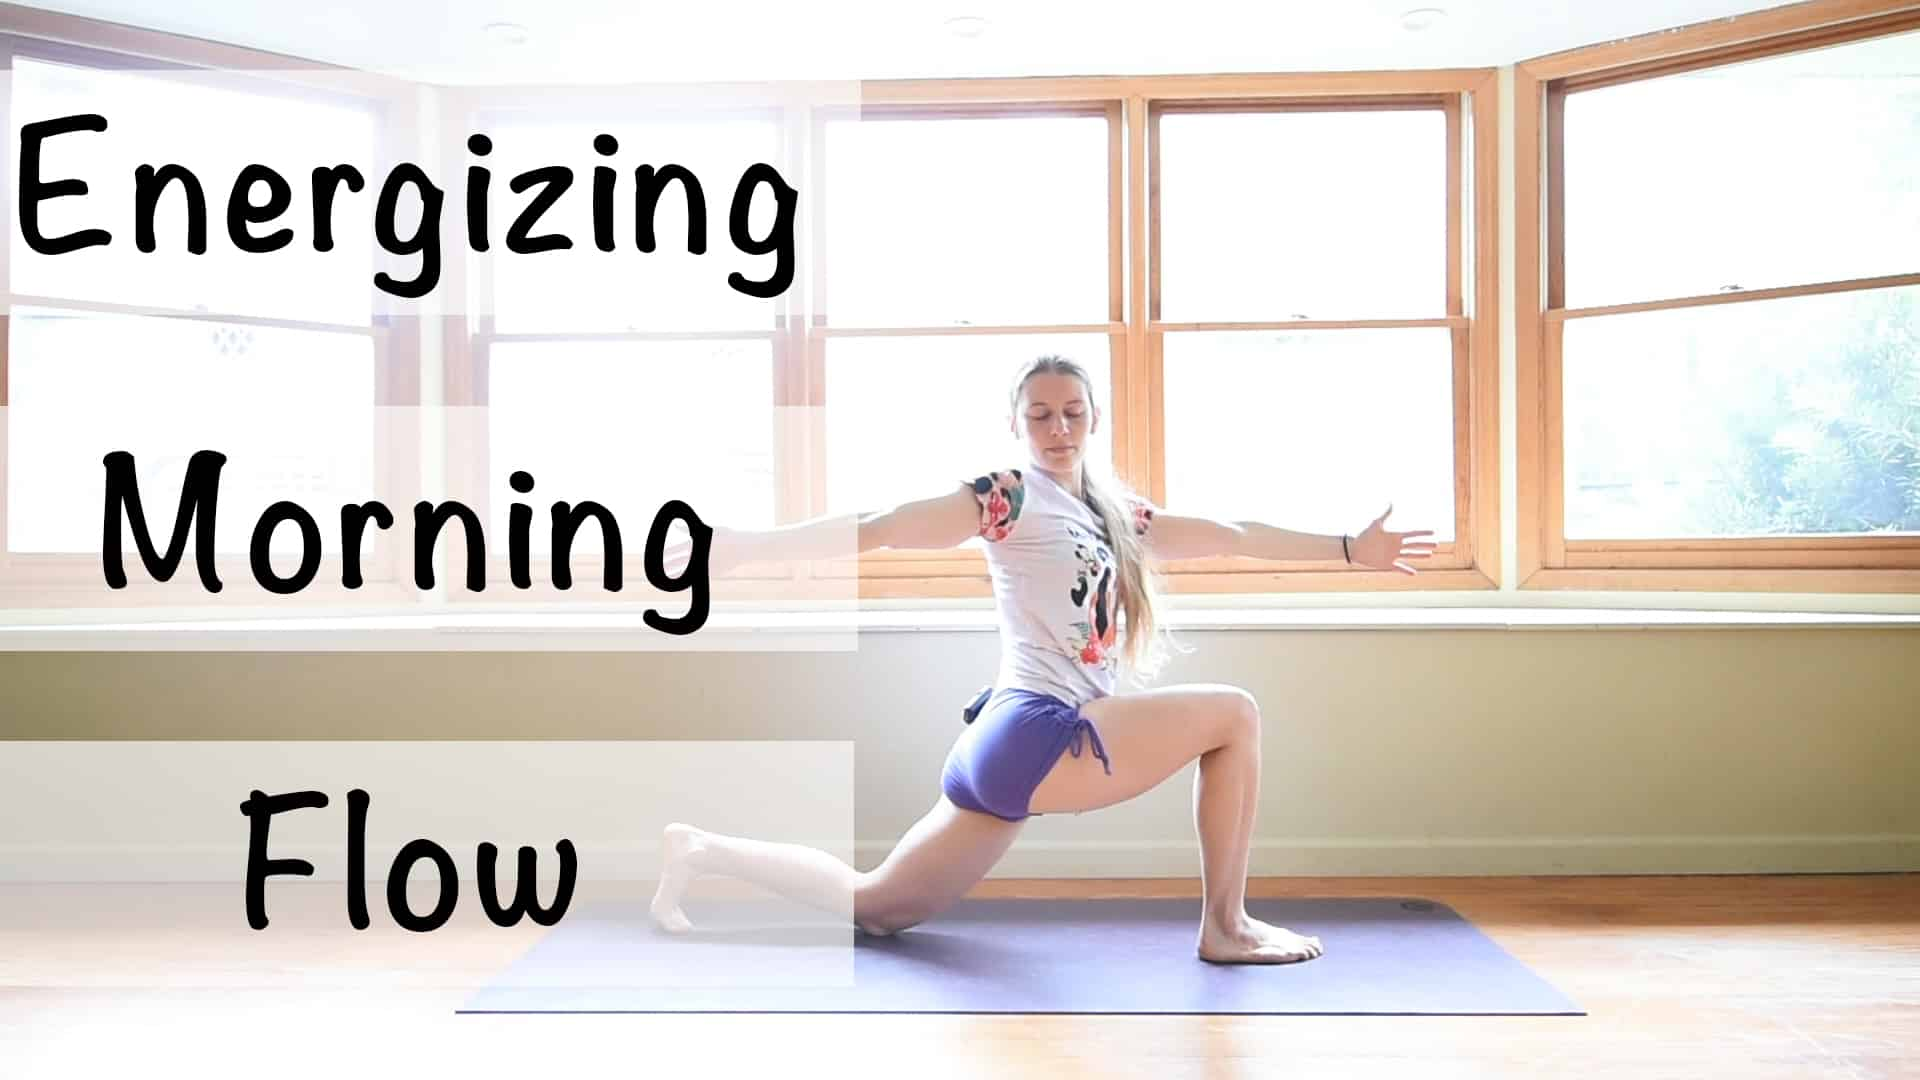 energizing morning flow yoga class